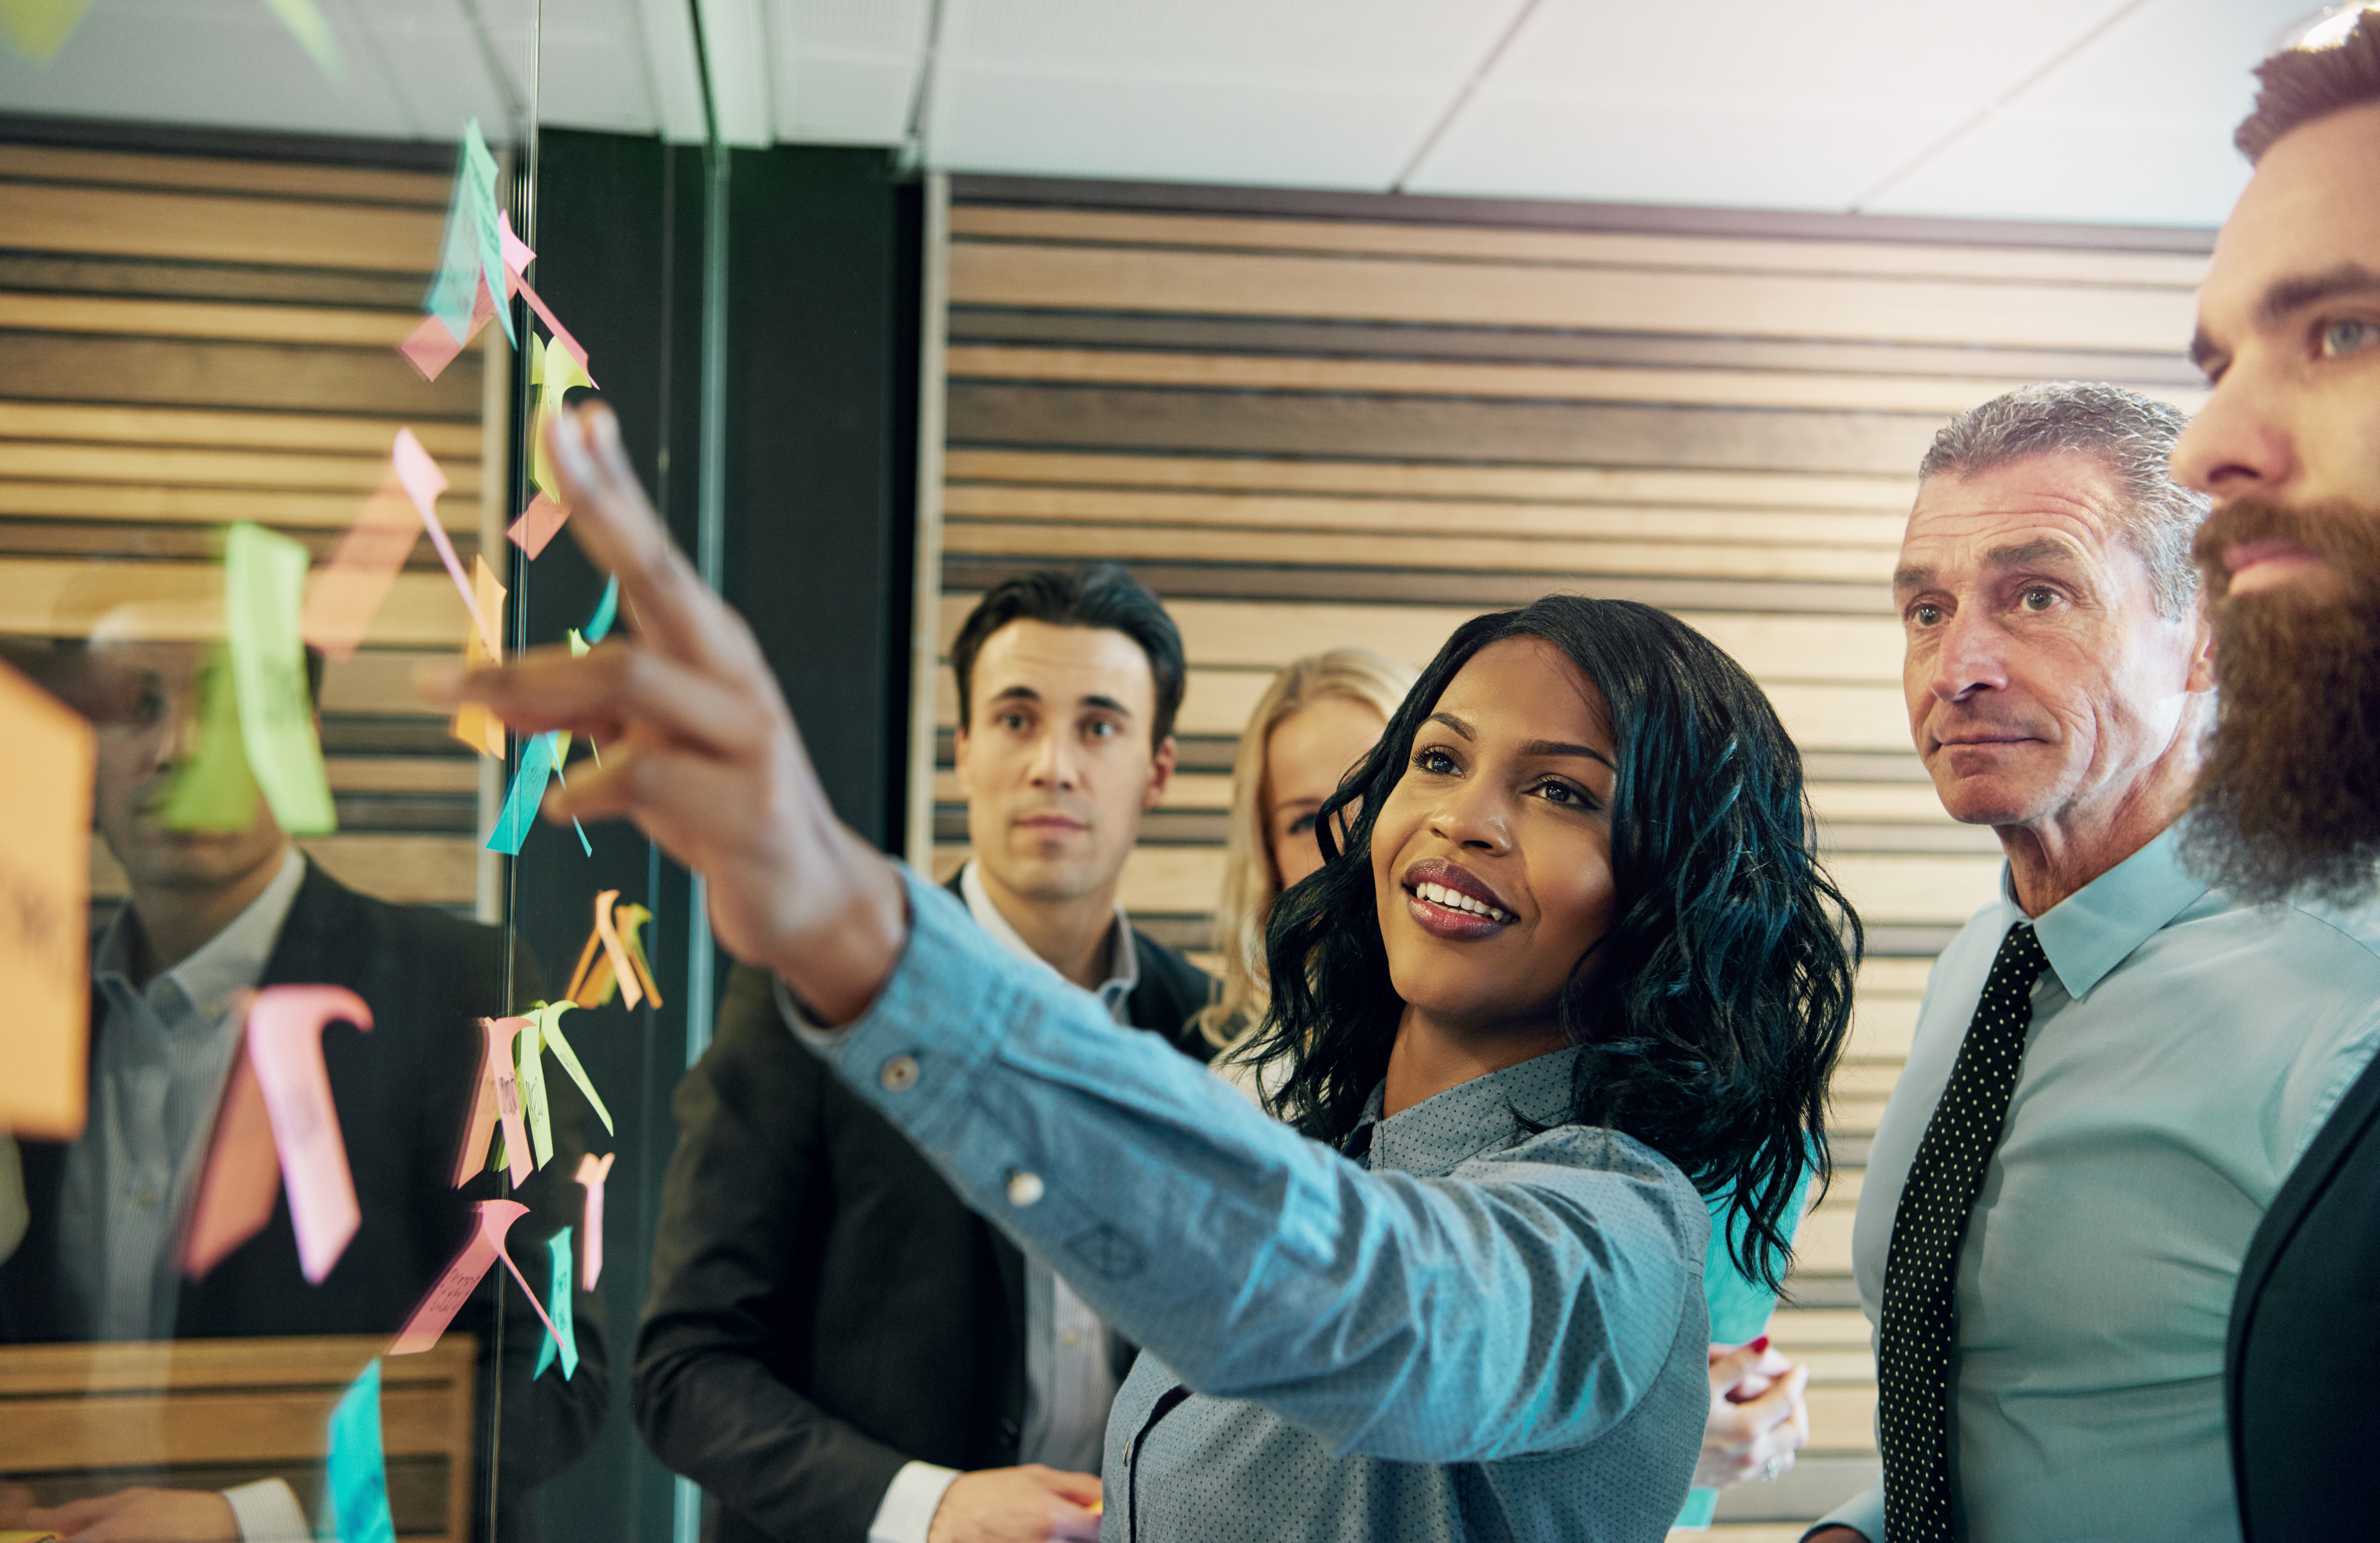 Young smiling black businesswoman at the wall with stickers communicating with her colleagues. Mixed team of entrepreneurs